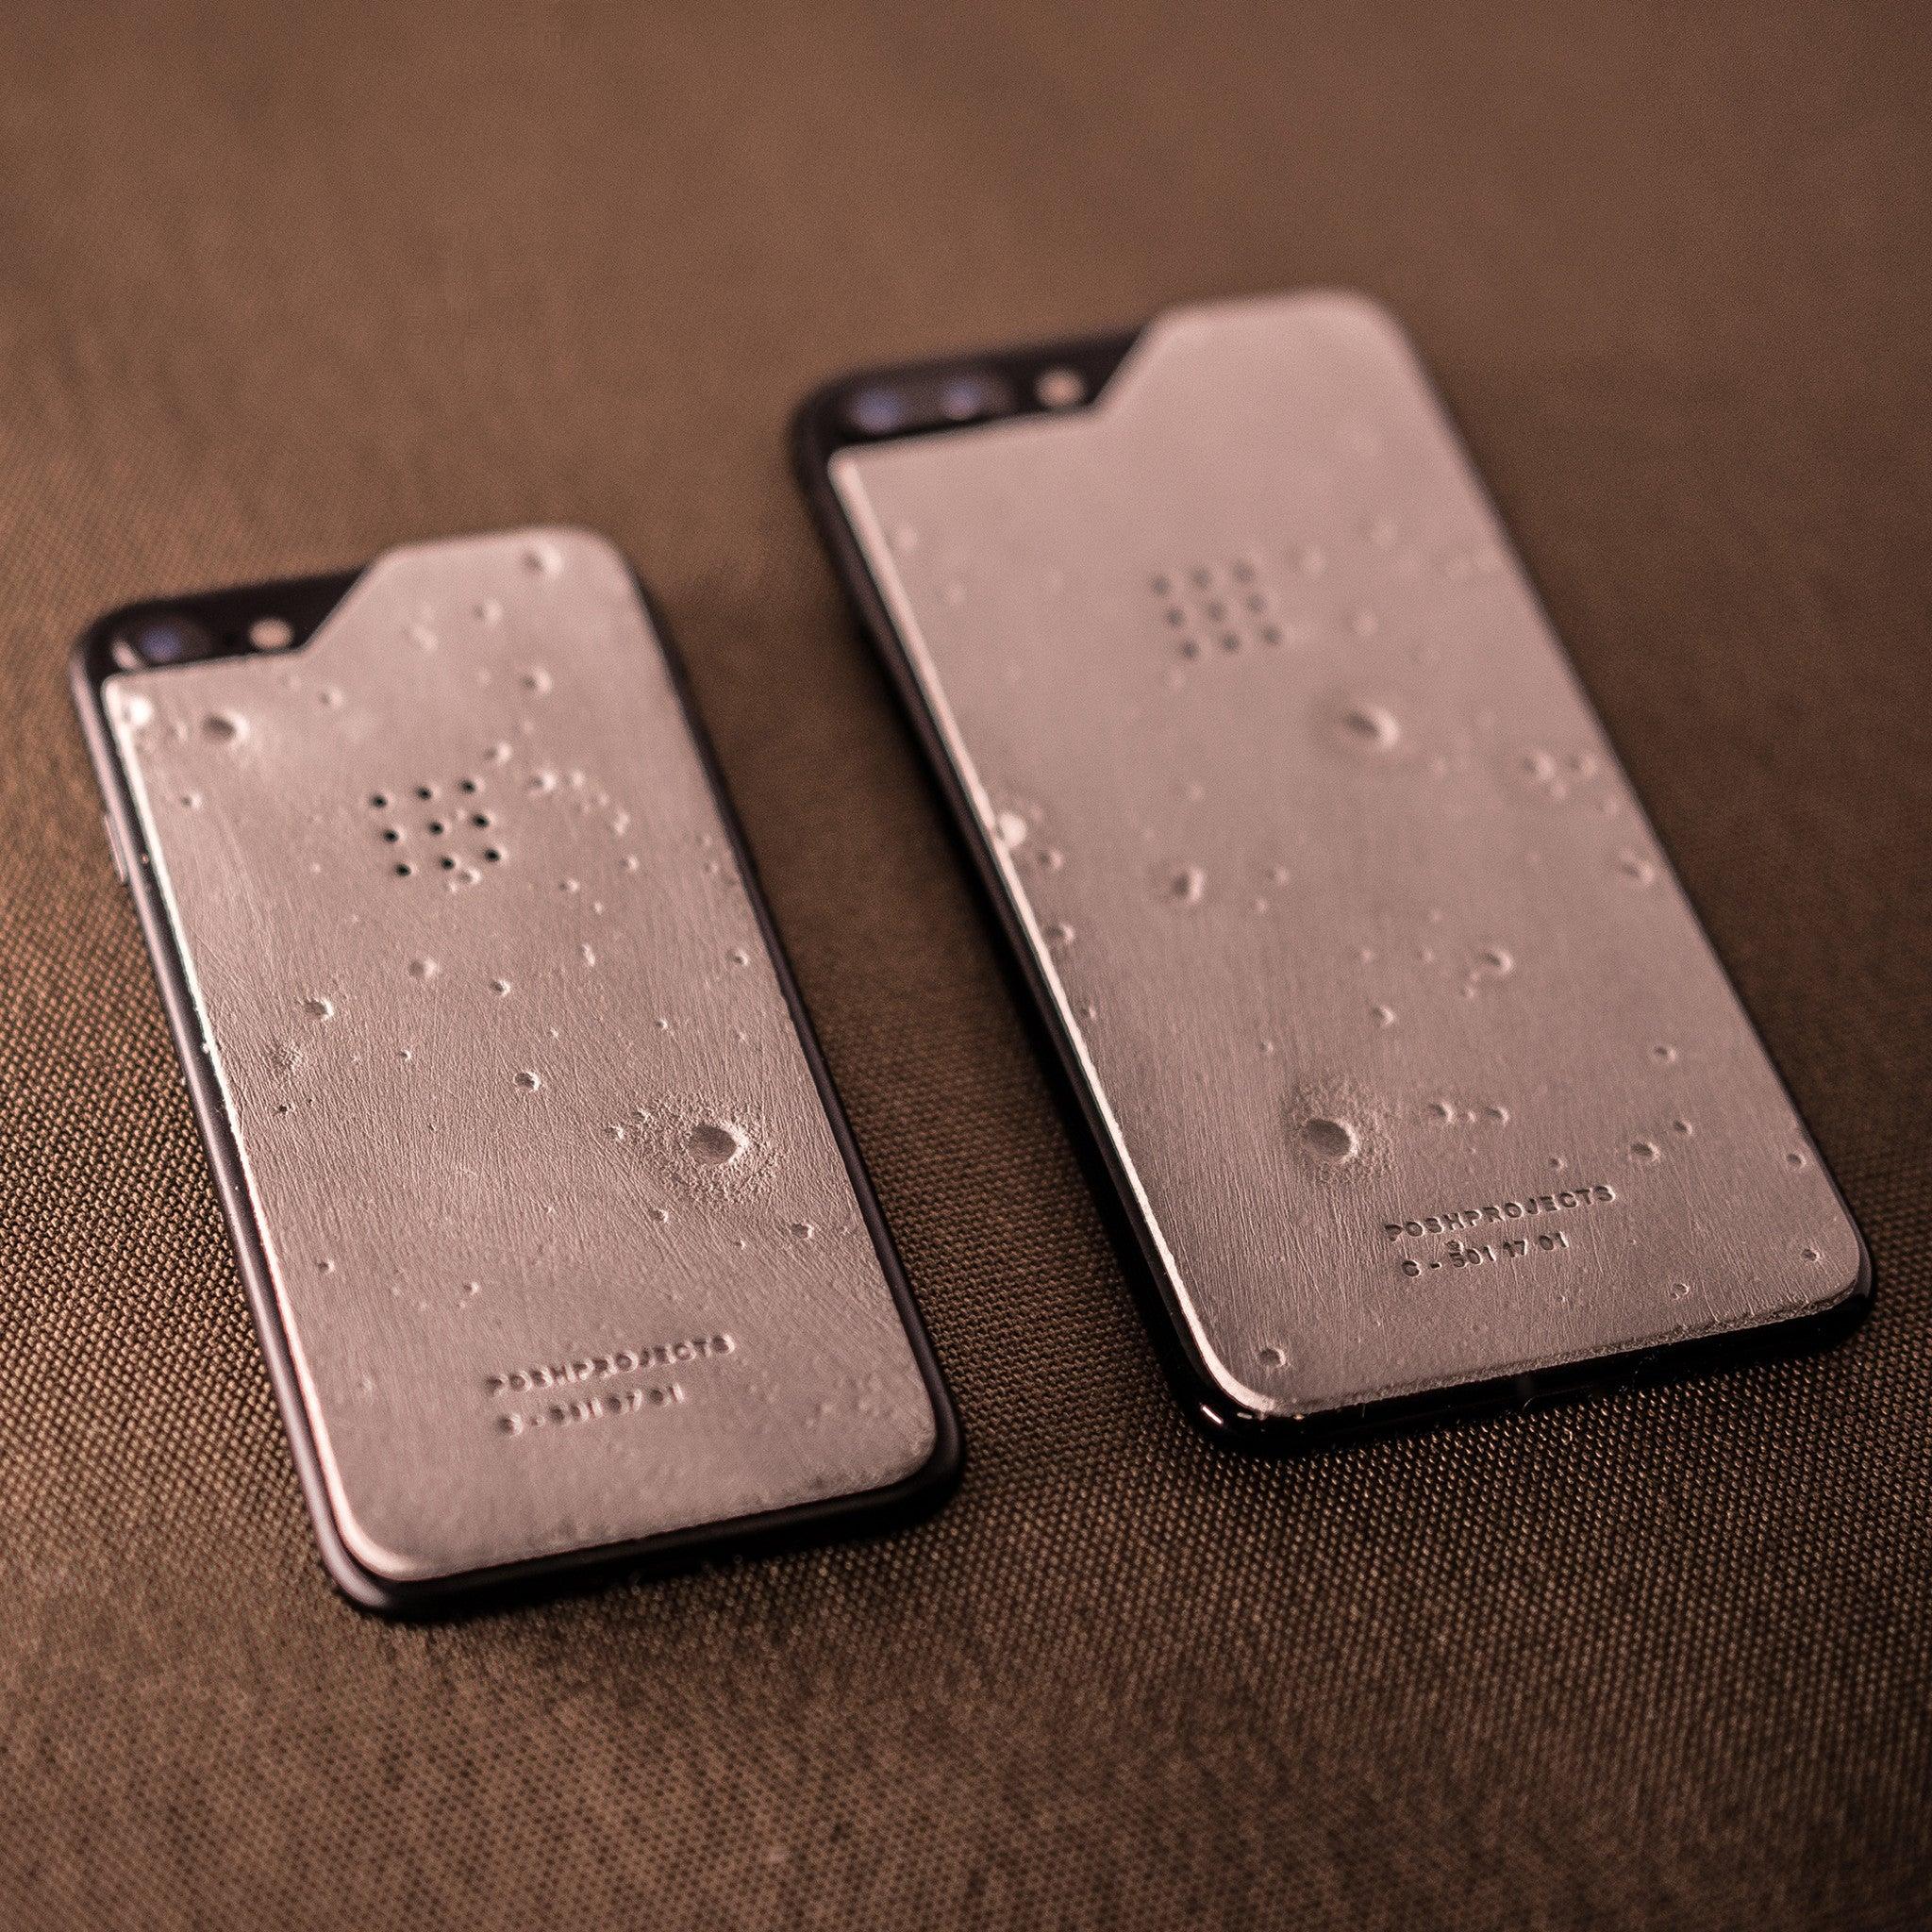 'Luna' Concrete iPhone Skin with Craters